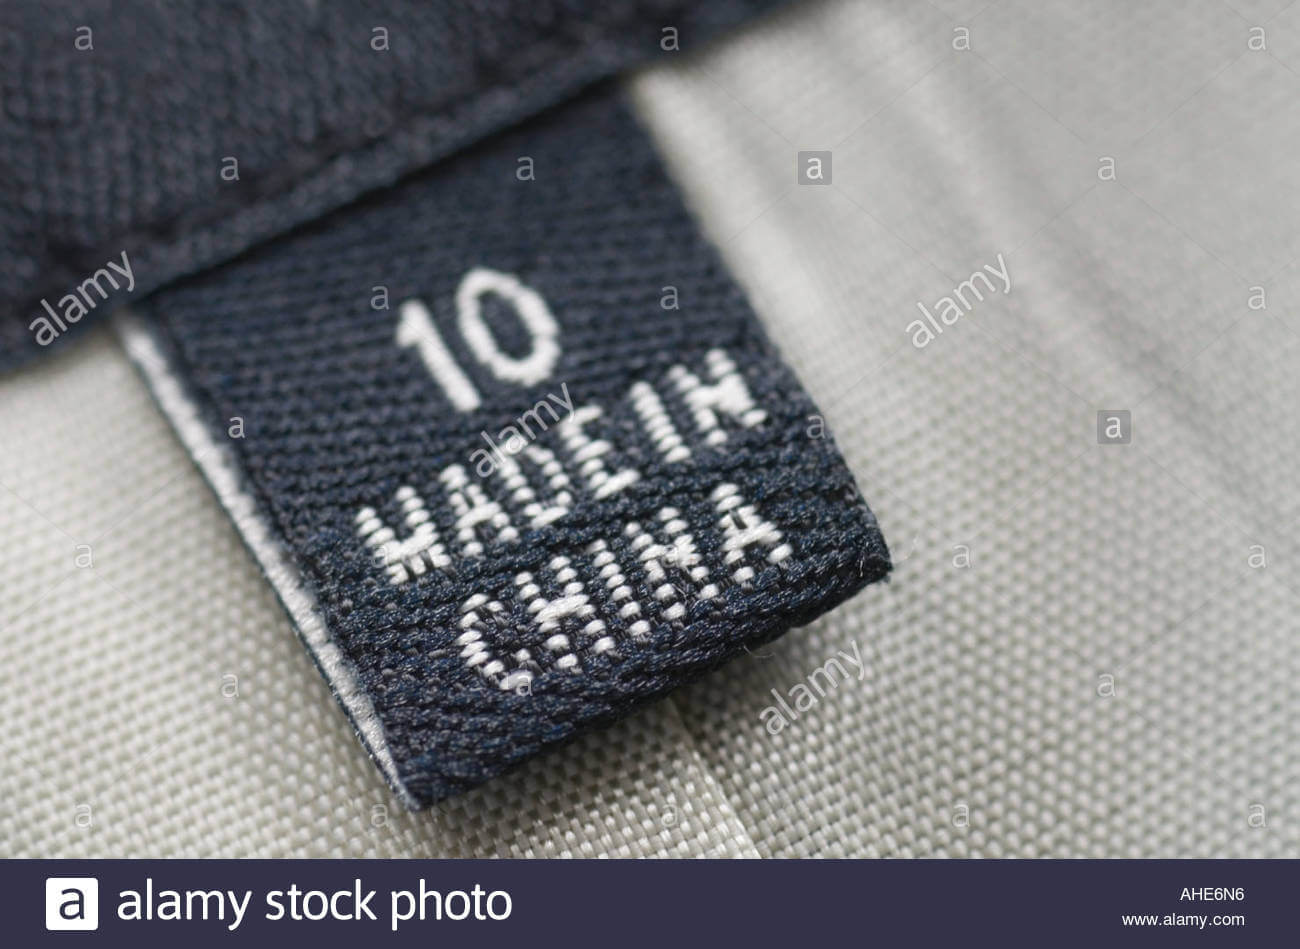 Made in China Product Label